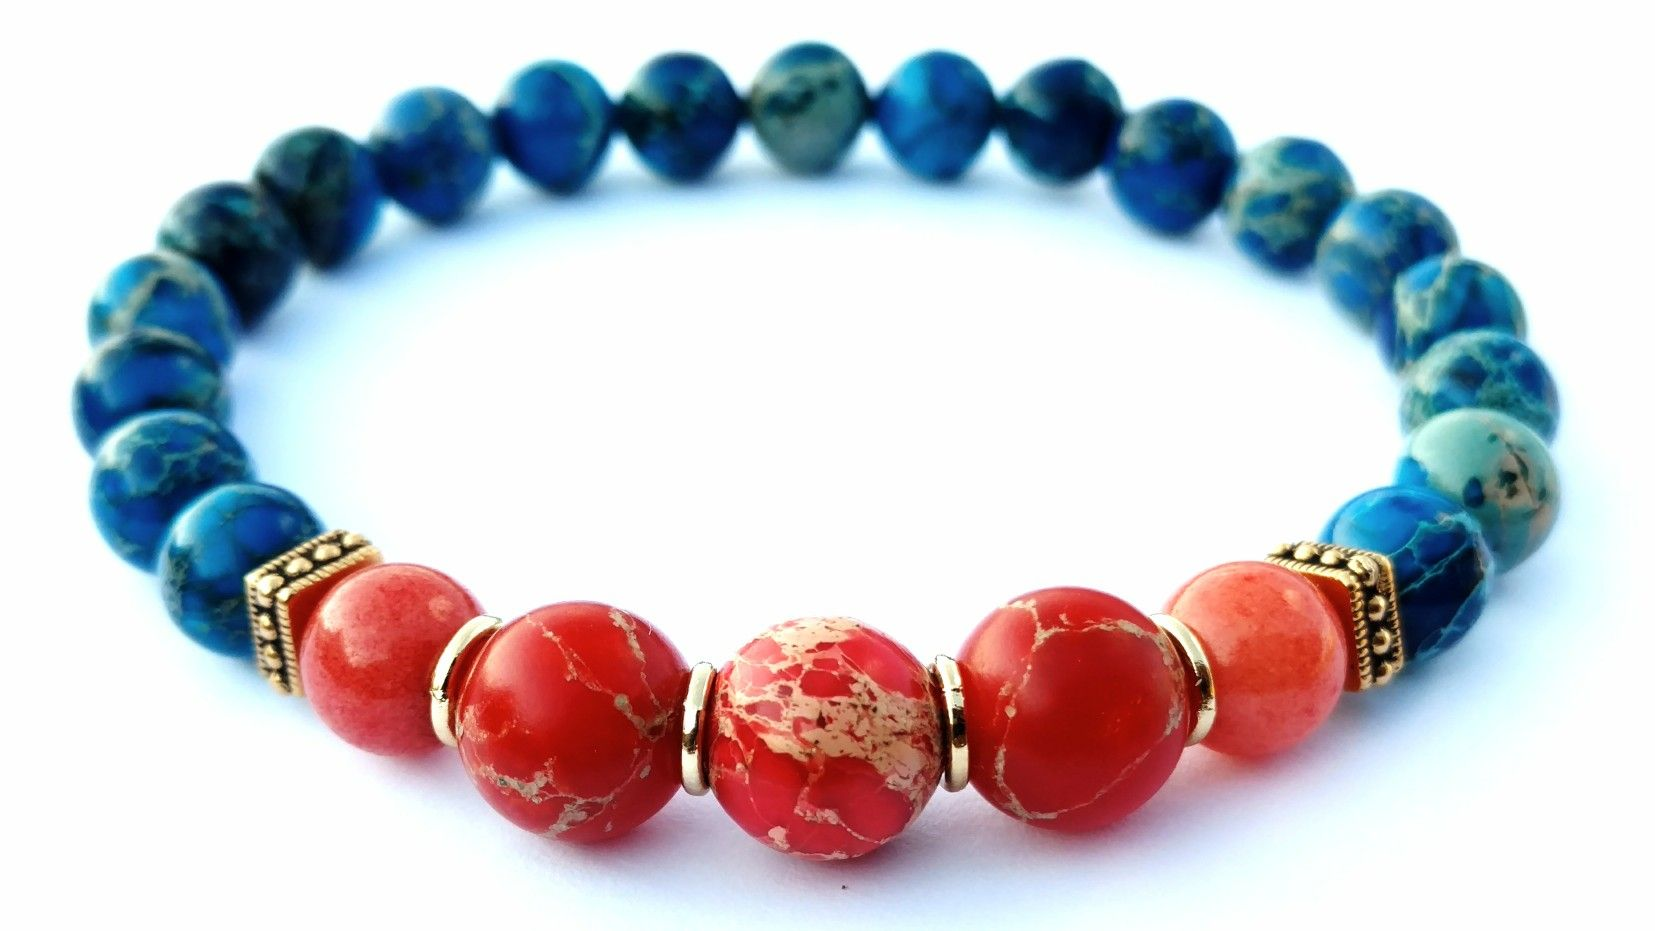 Custom ÉtABli Aqua Terra Jasper and Red Imperial Jasper stone Earth vs Mars mens beaded bracelet. #Dope